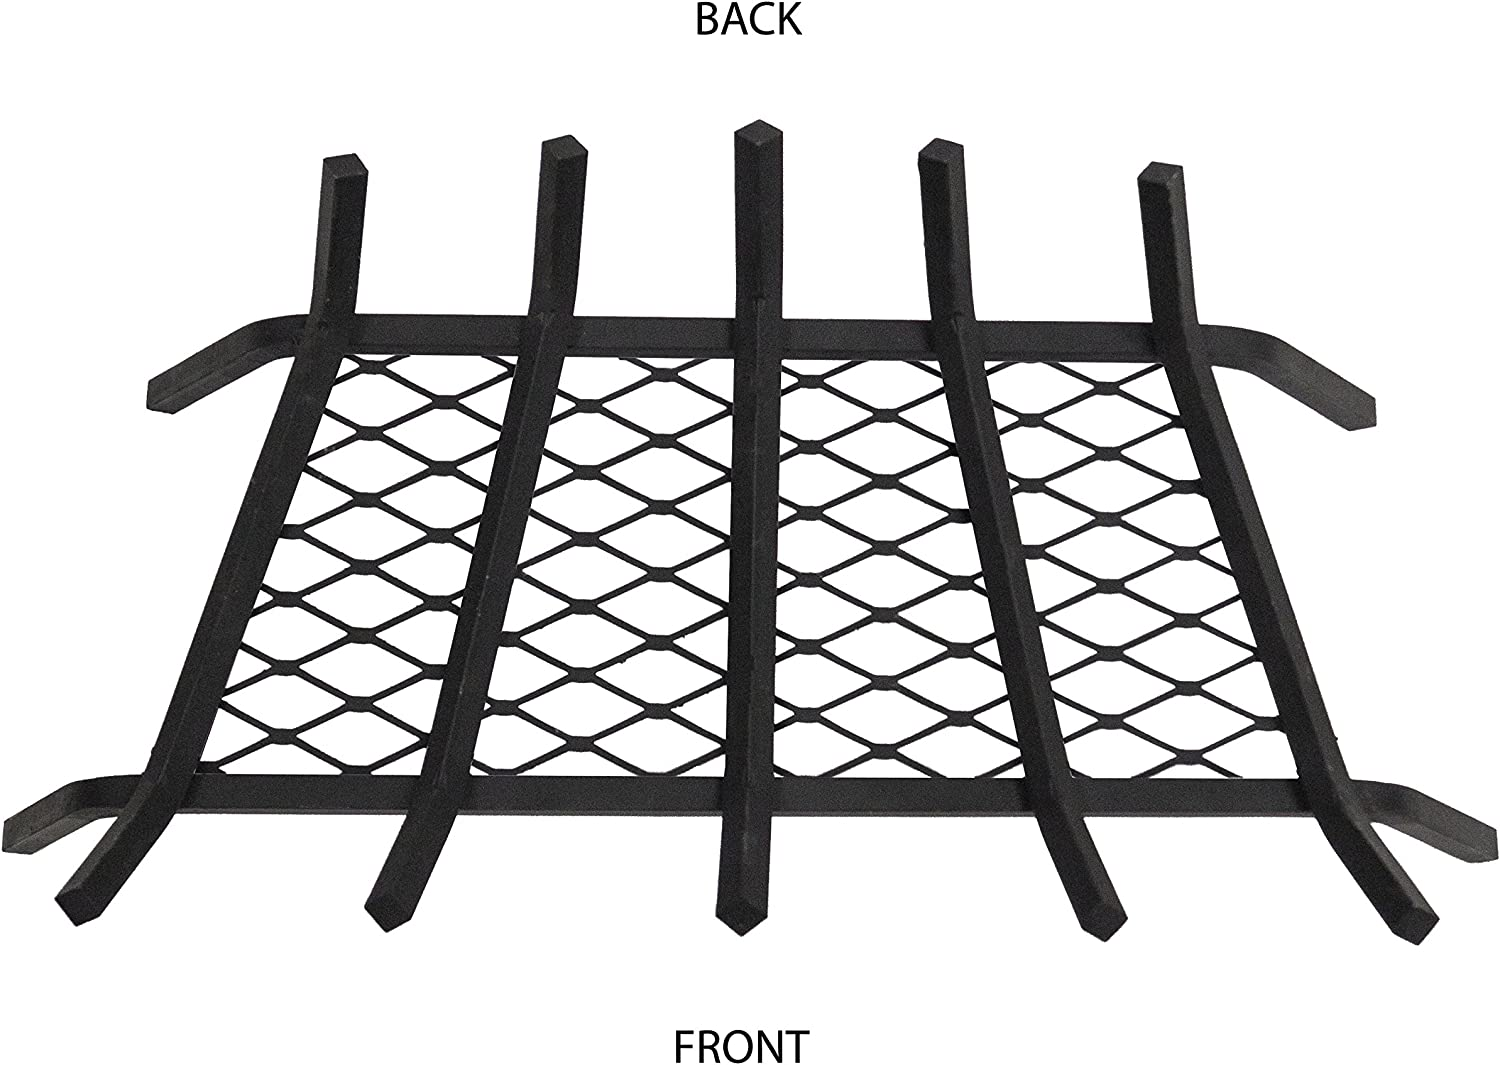 Black Pleasant Hearth 24-Inch 1//2 Solid Steel Fireplace Grates With Ember Retainer